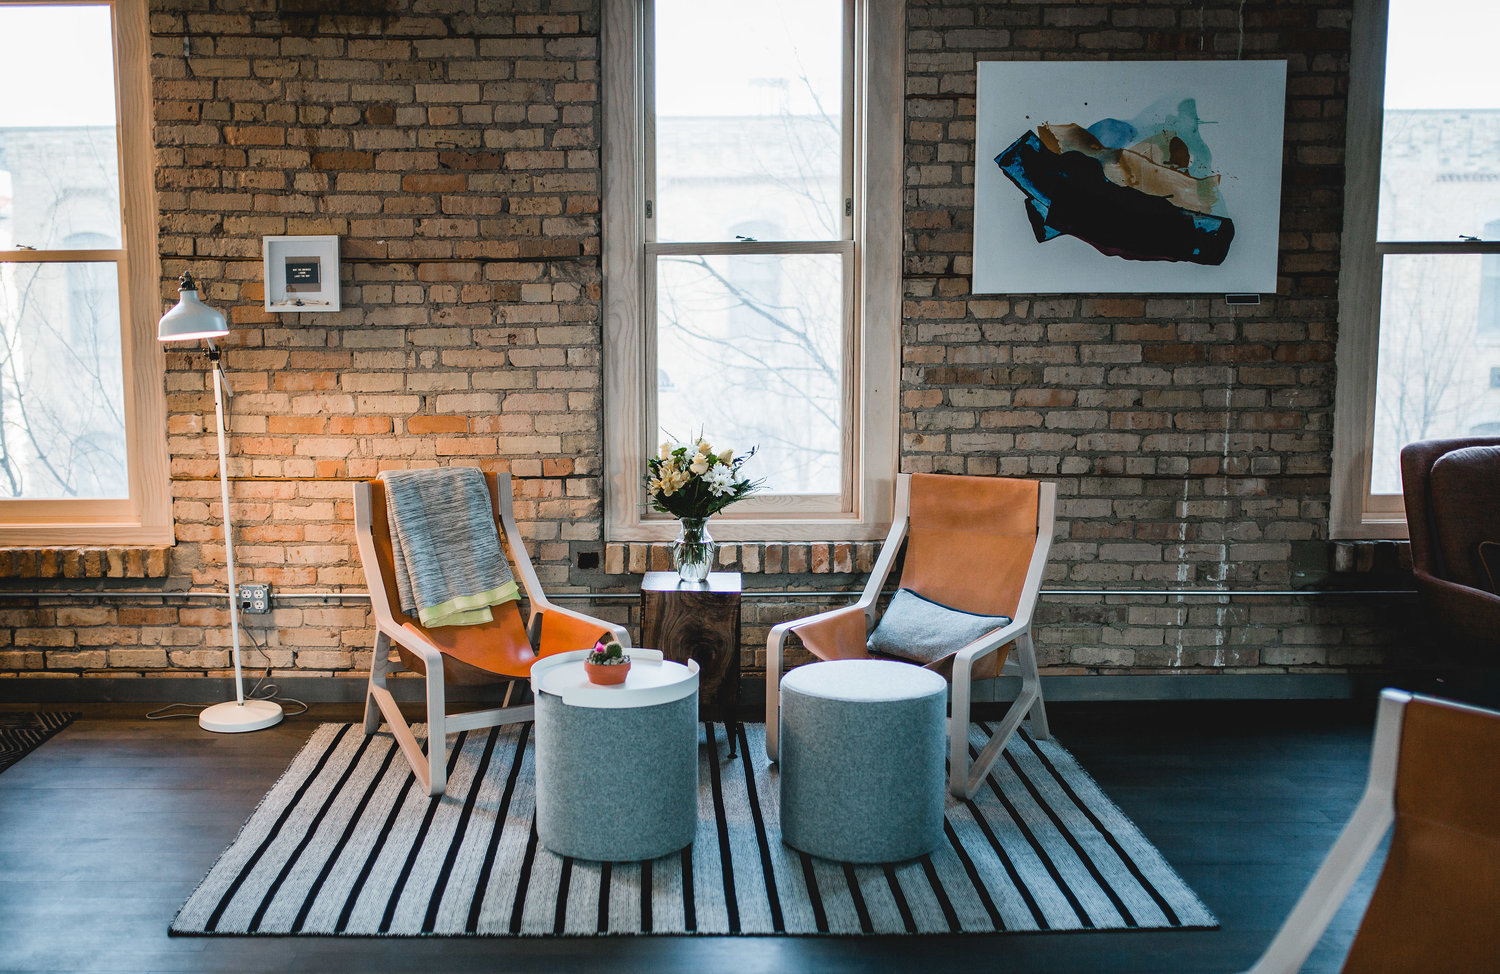 The Coven -- women and non-binary folks' coworking space in Minneapolis, USA